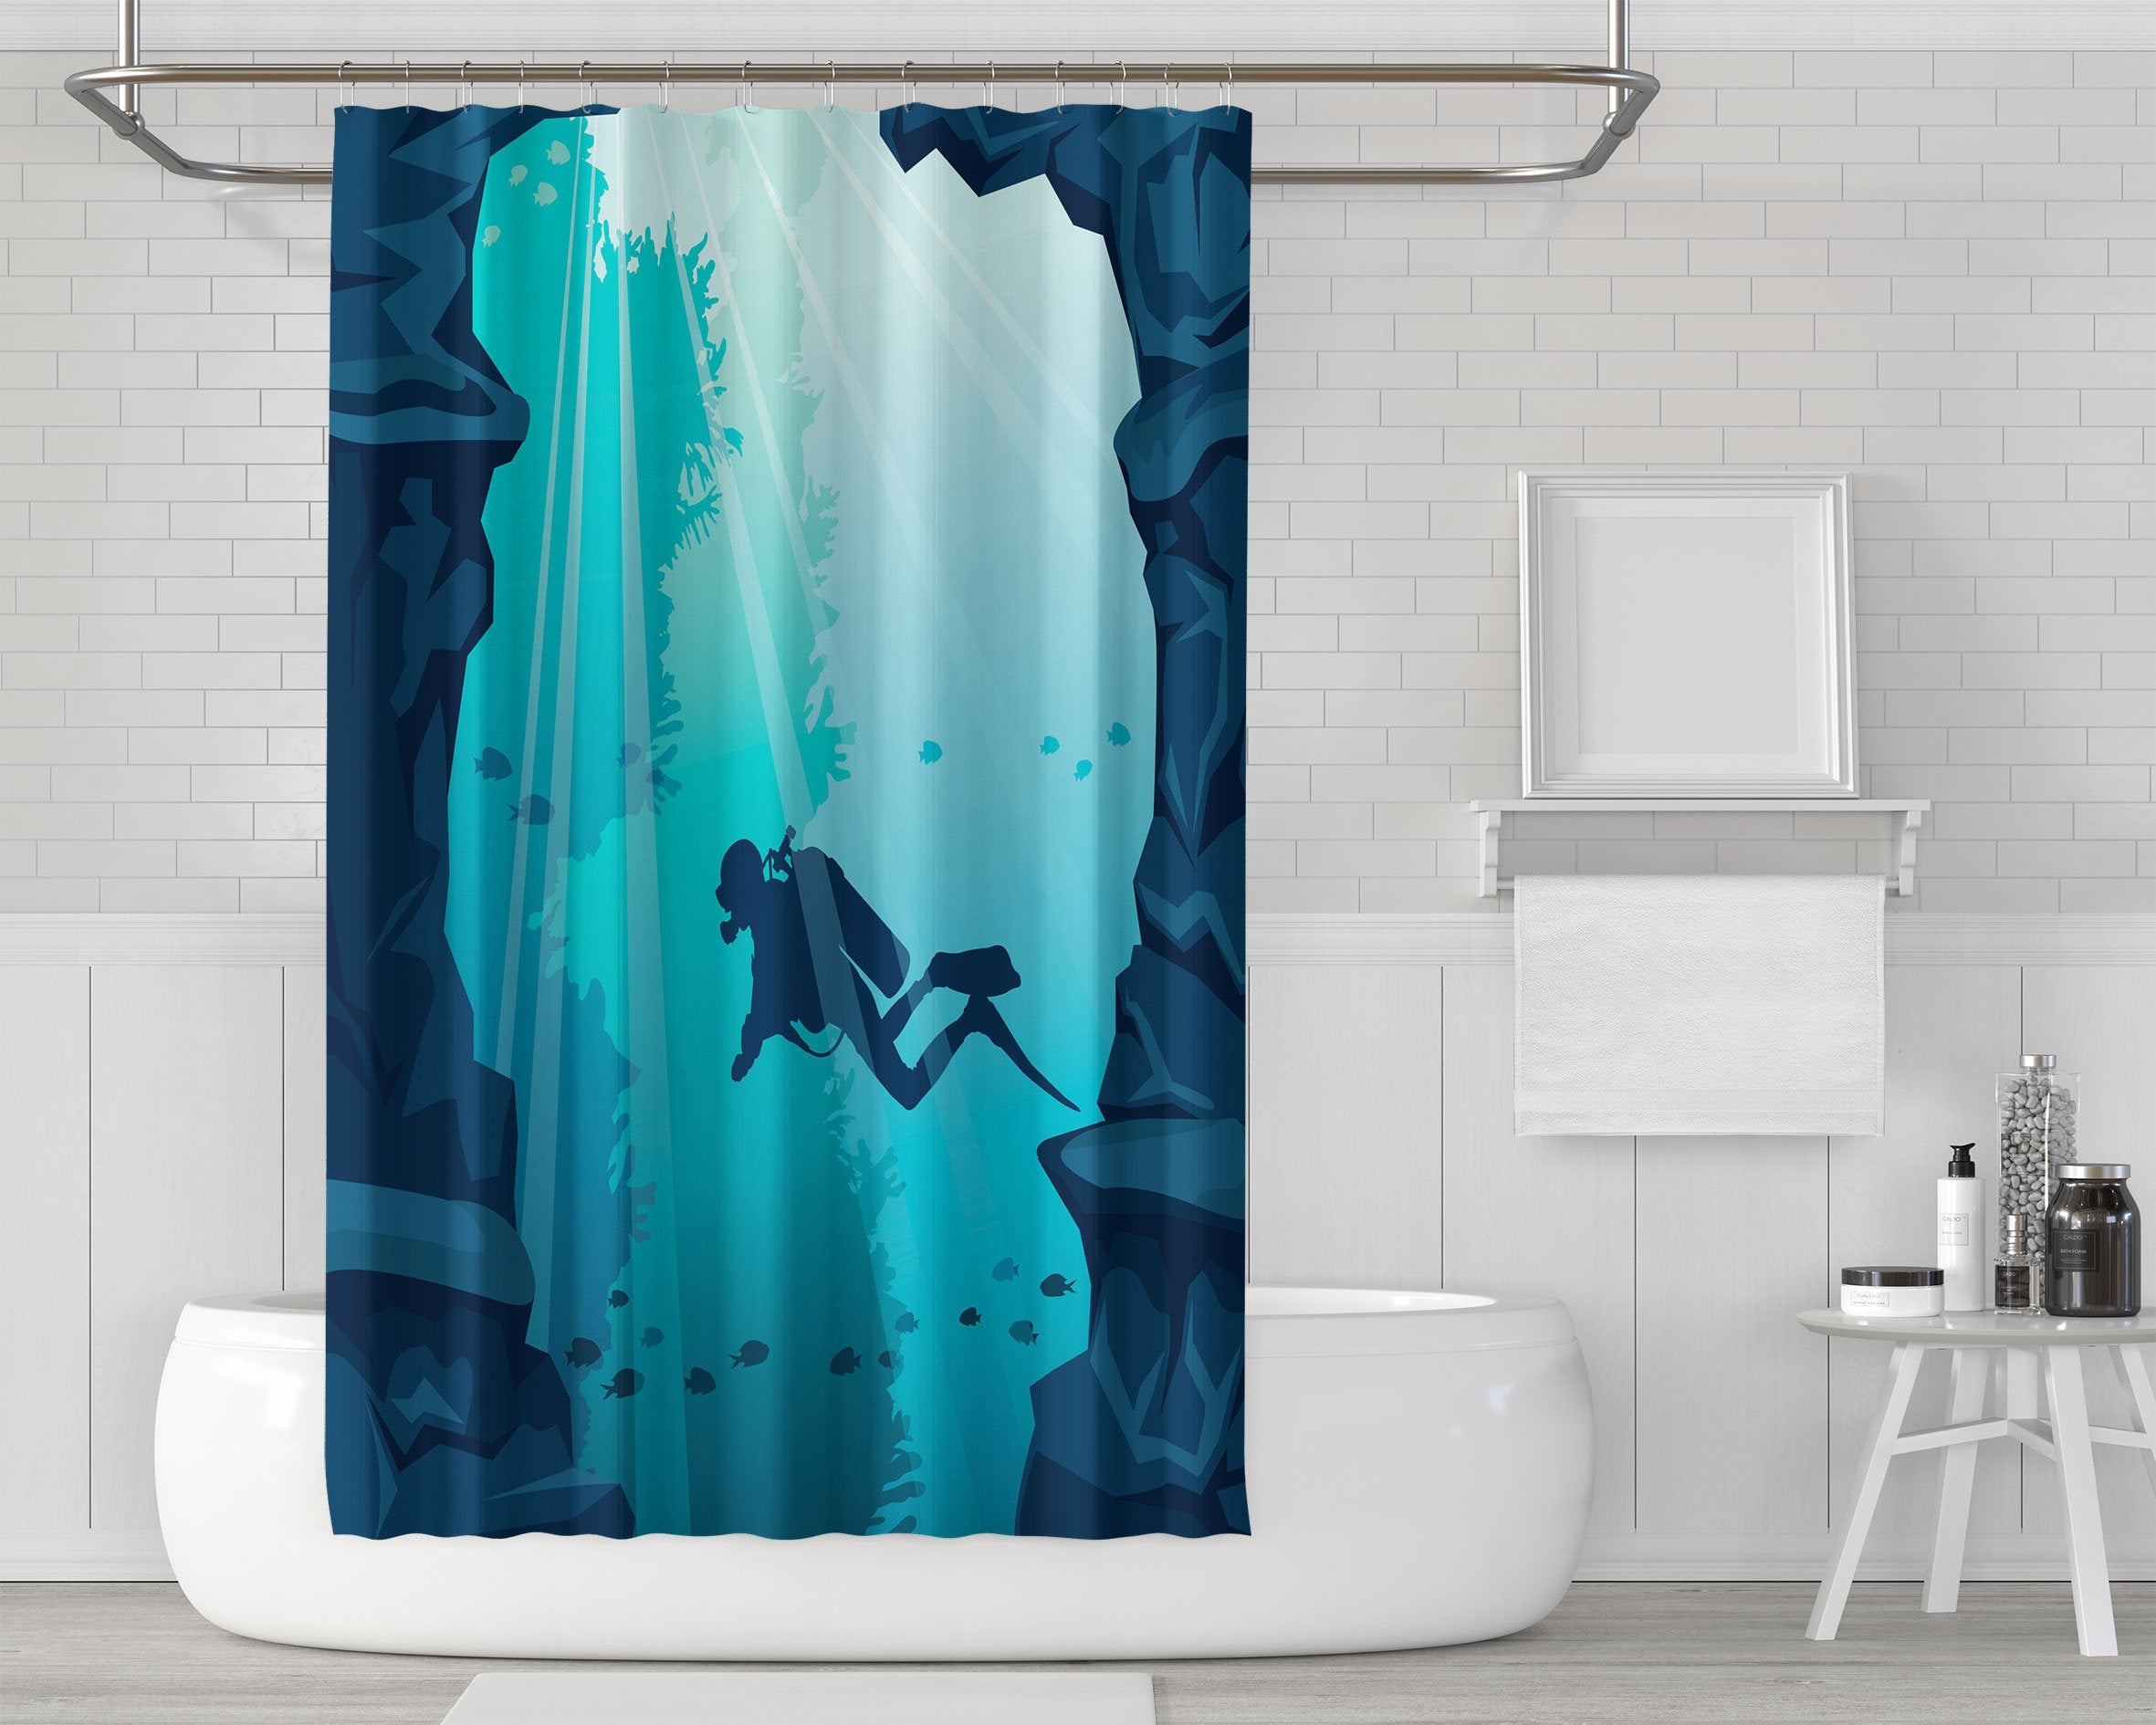 studio shower products curtain devonian shark cladoselache